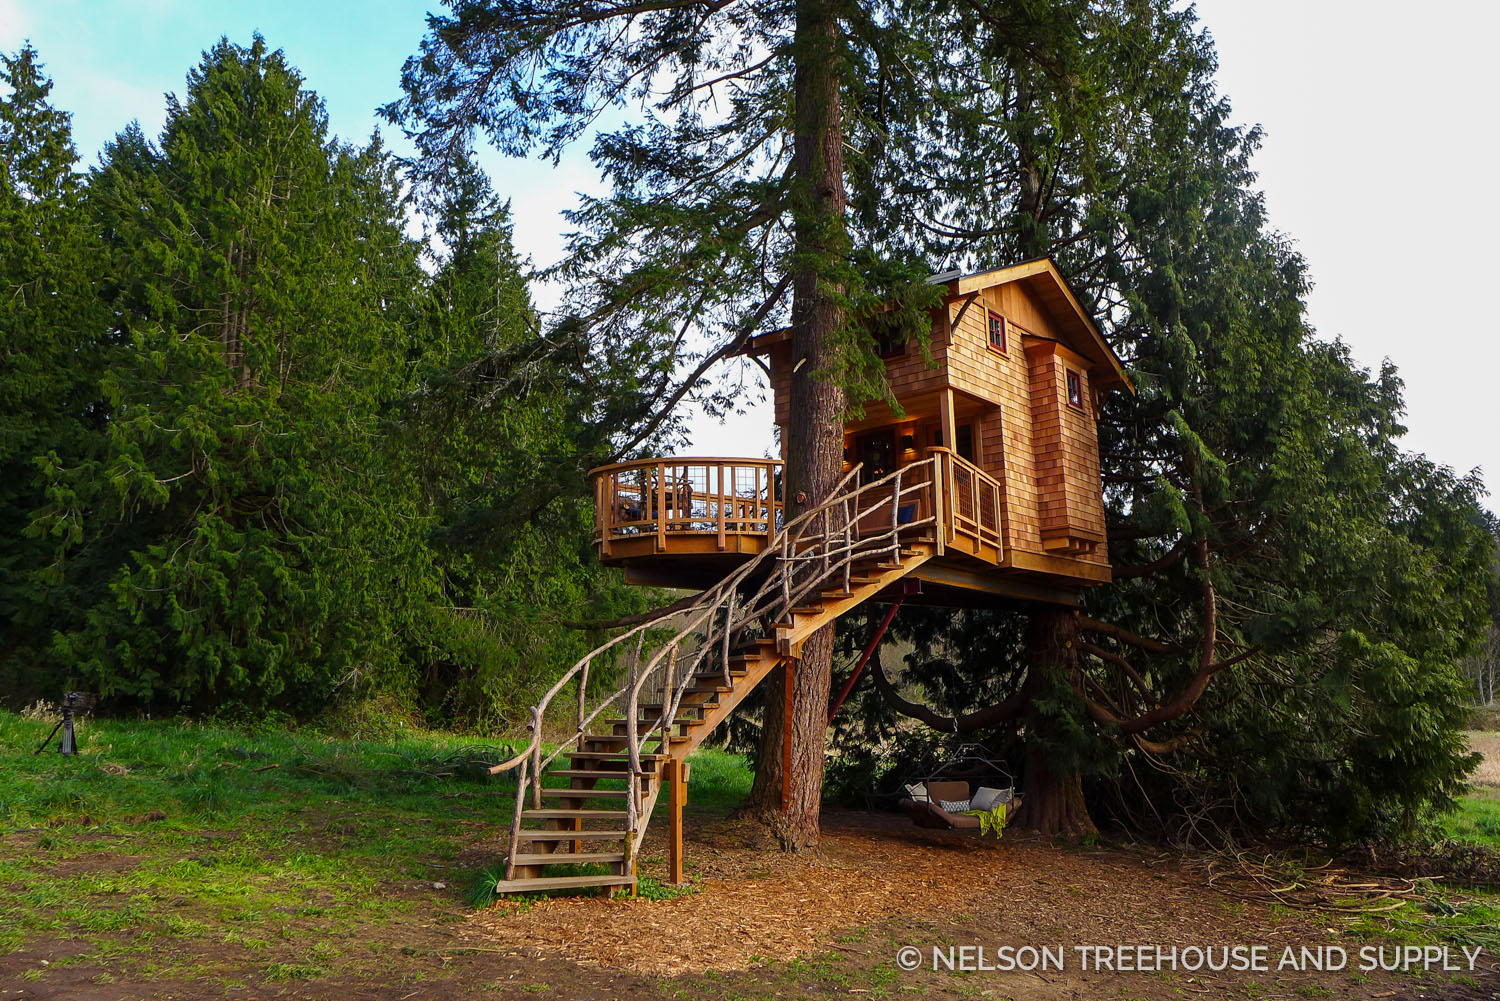 Building  charlie's treehouse at treehouse Resort and spa  was simply magical. the ongoing development of the property brings me so much joy.